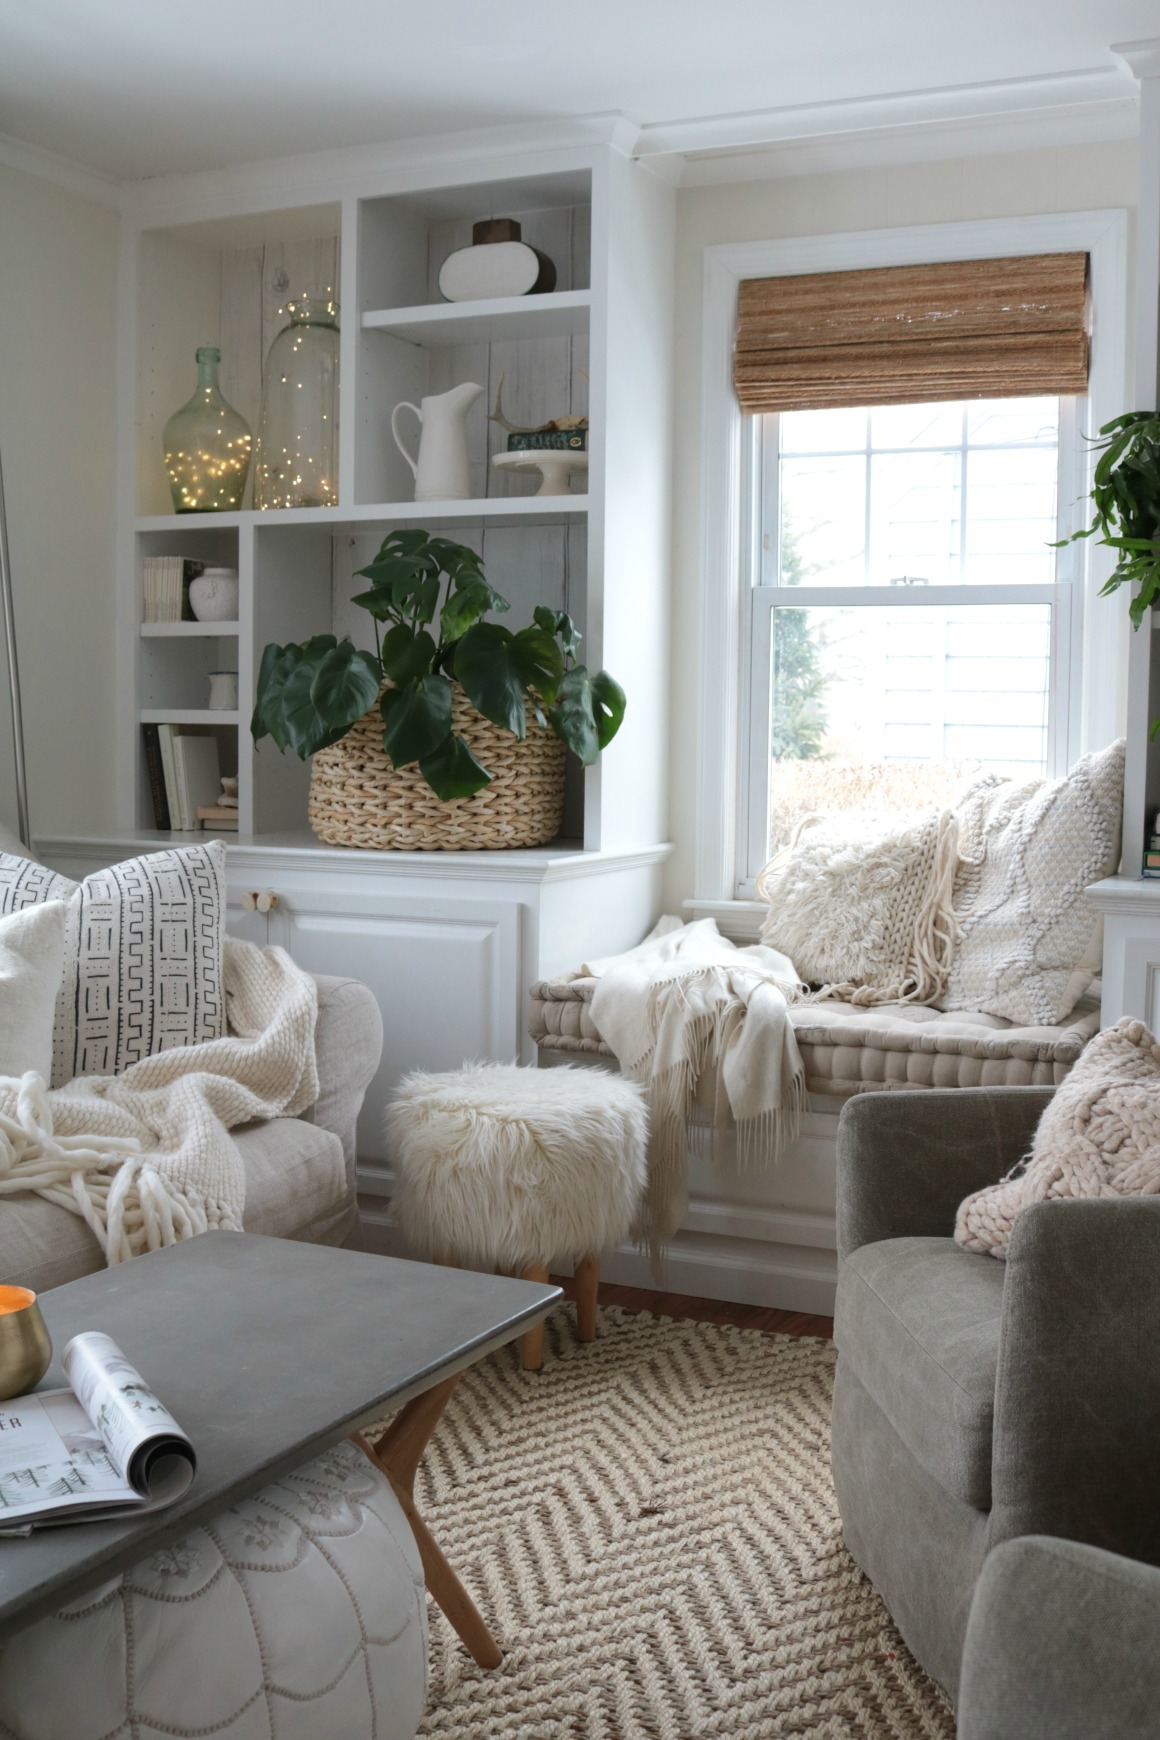 \How to Have a Cozy Home- 4 Simple Tips!